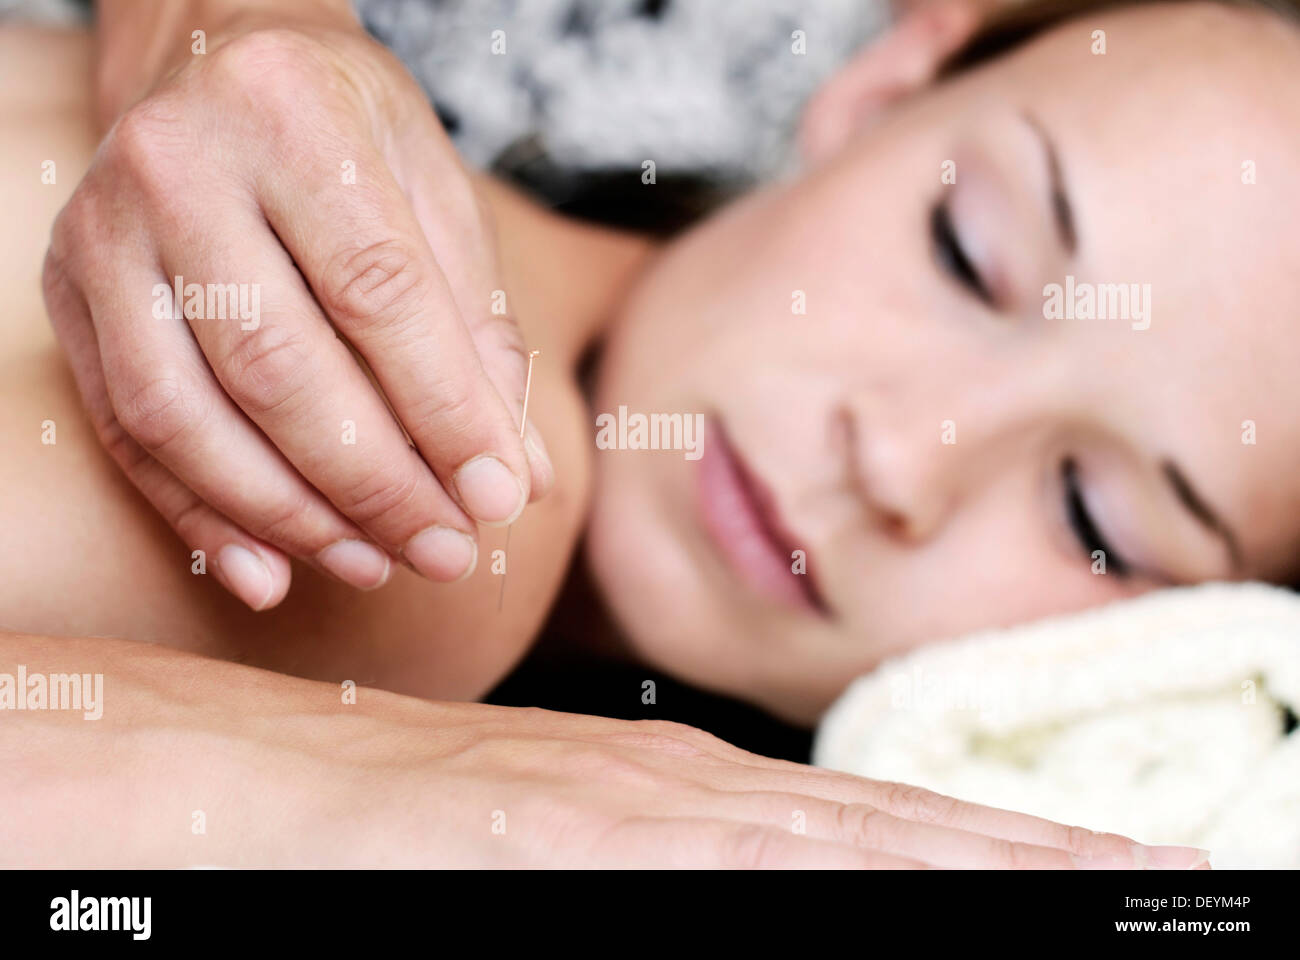 Young woman receiving acupuncture therapy in a natural healing practice - Stock Image